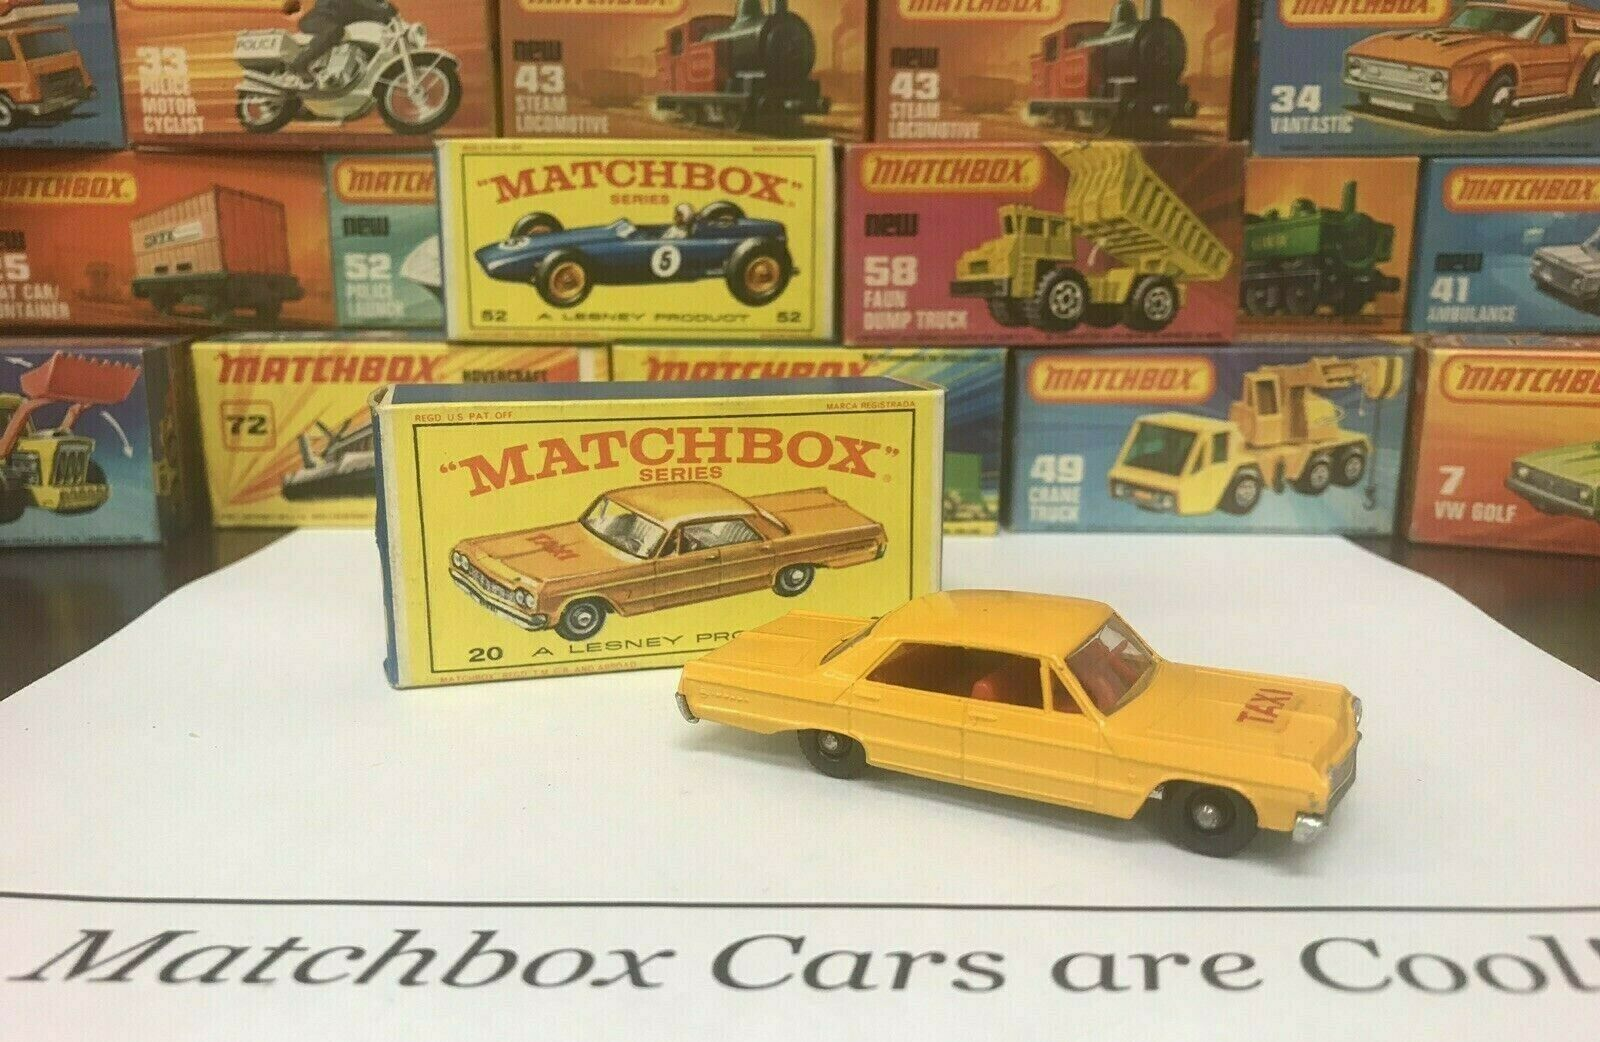 Matchbox  20 Chevrolet Impala Taxi Mint w box Awesome Condition, ULTRA COOL